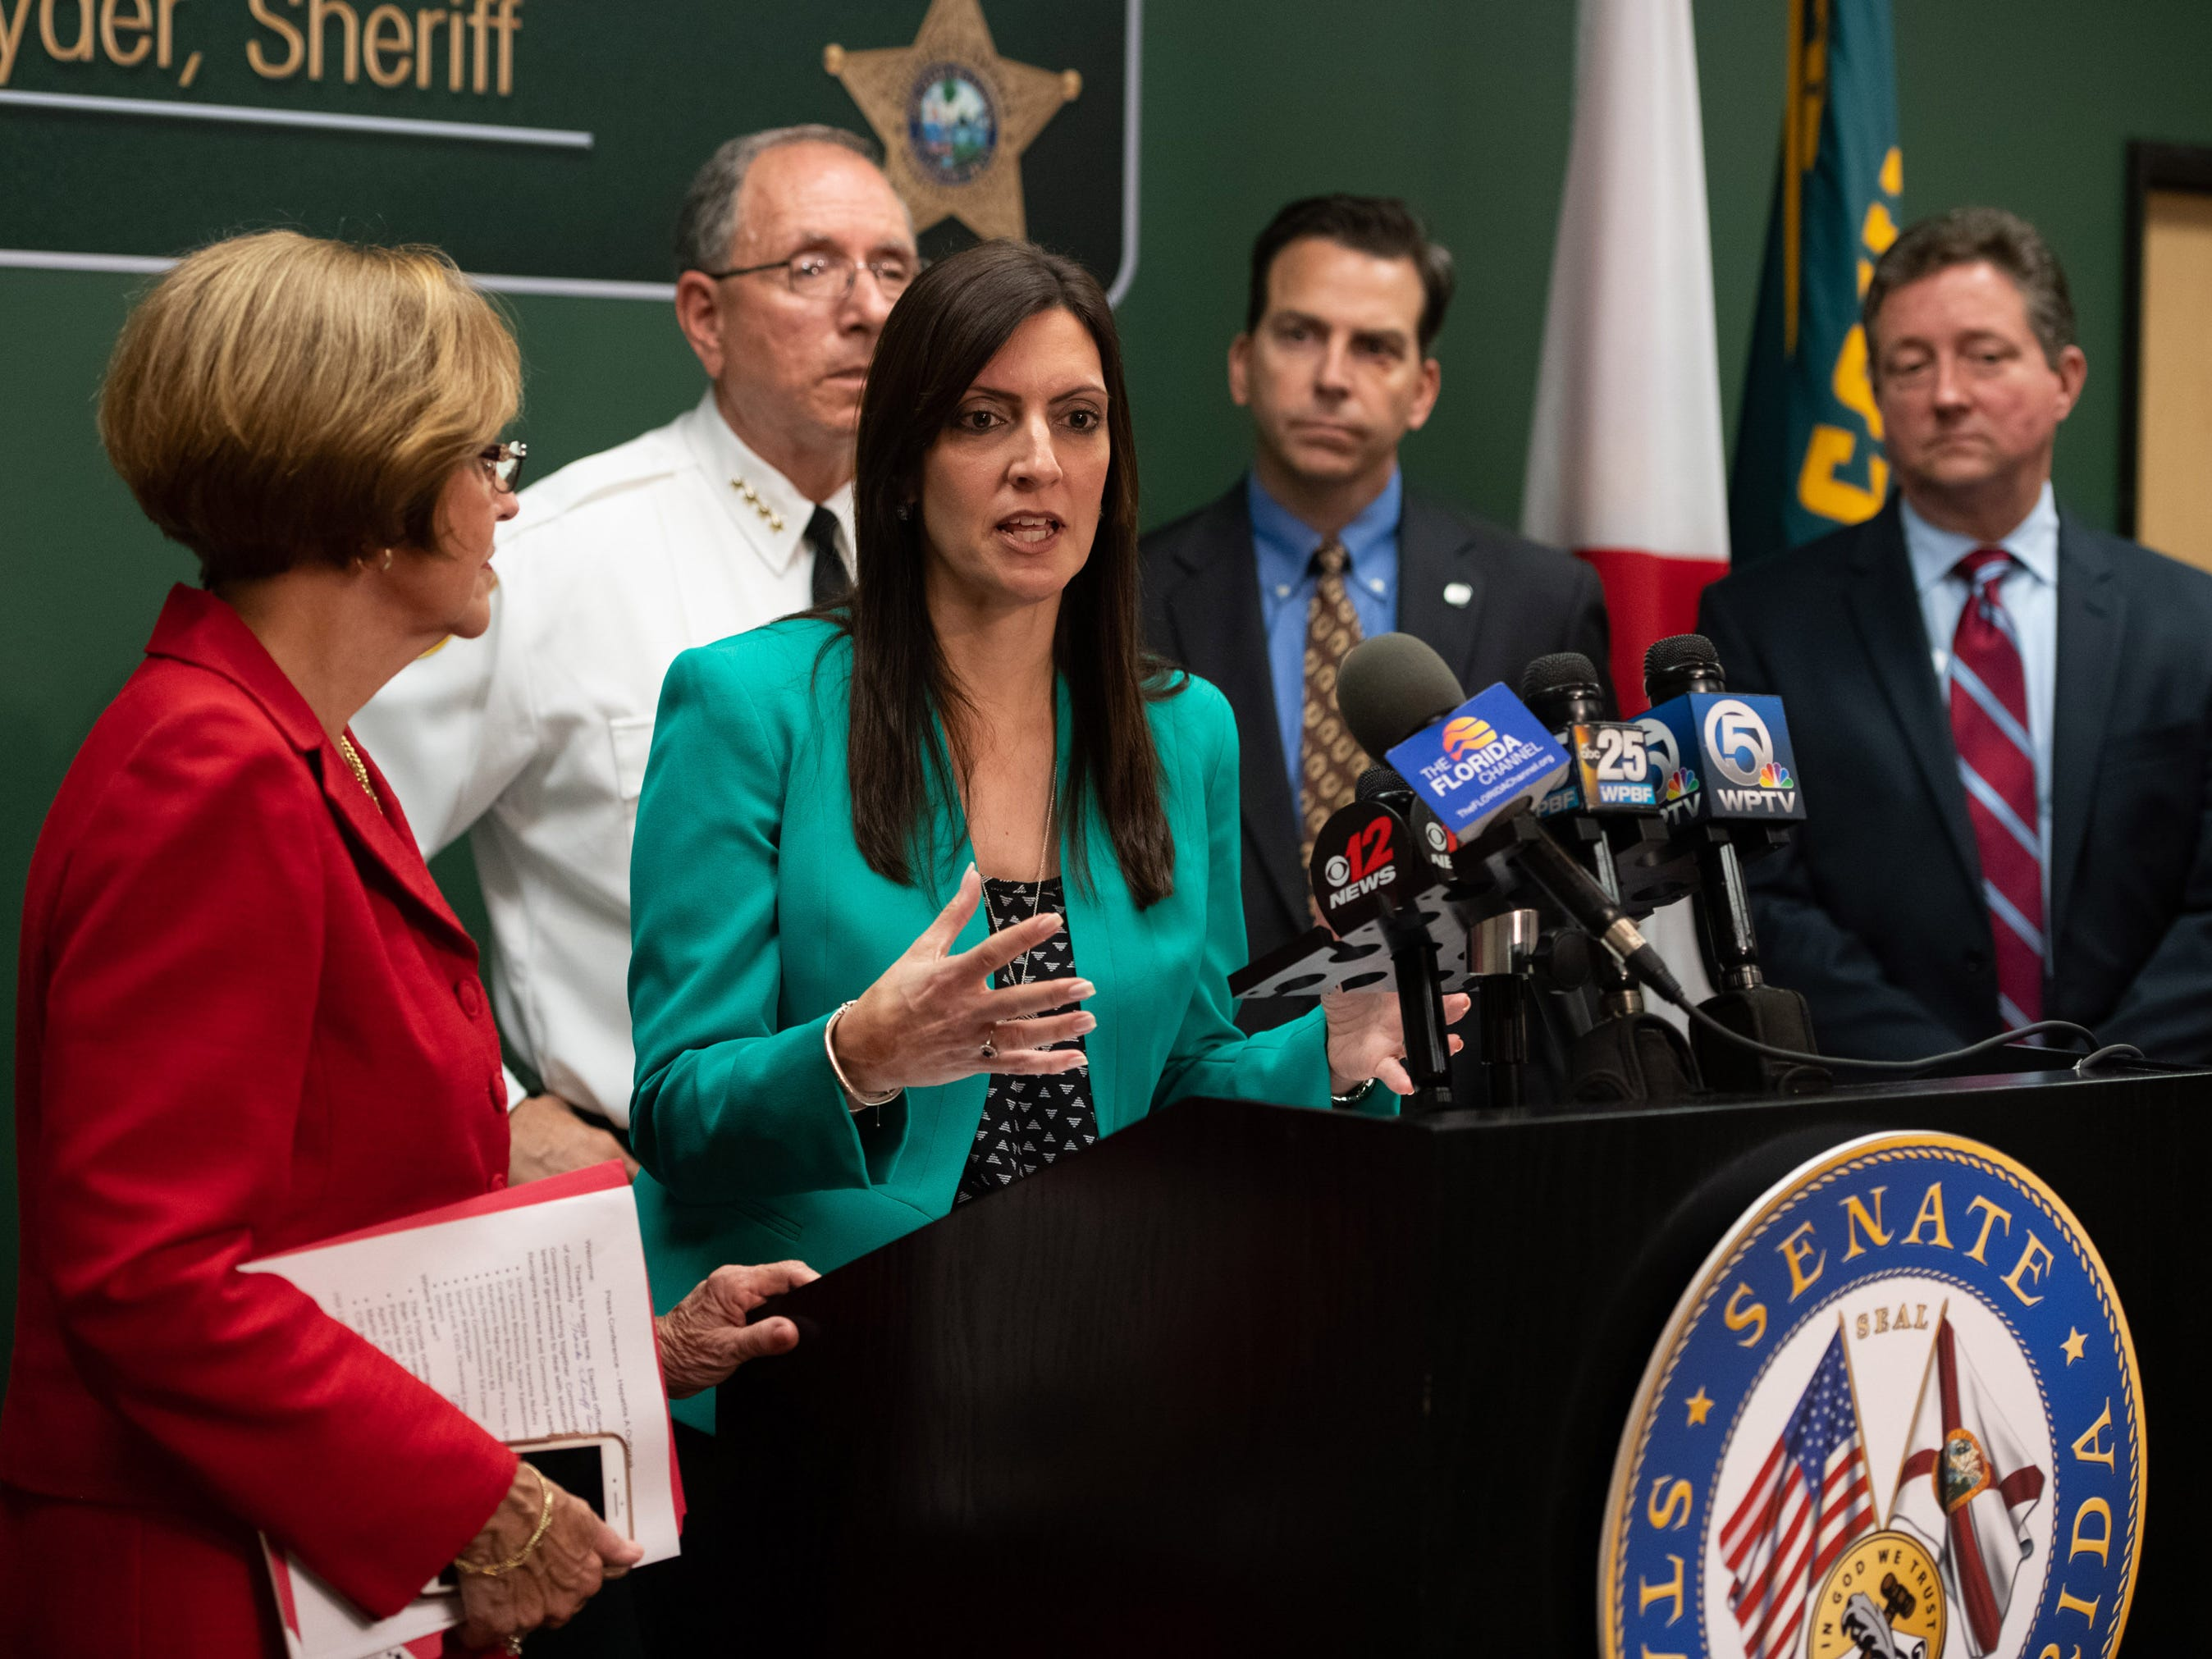 Lieutenant Governor Jeanette Nu–ez speaks at the press conference regarding the recent hepatitis A outbreak in Martin County at Martin County Sheriff's Office on Friday, April 12, 2019, in Stuart.